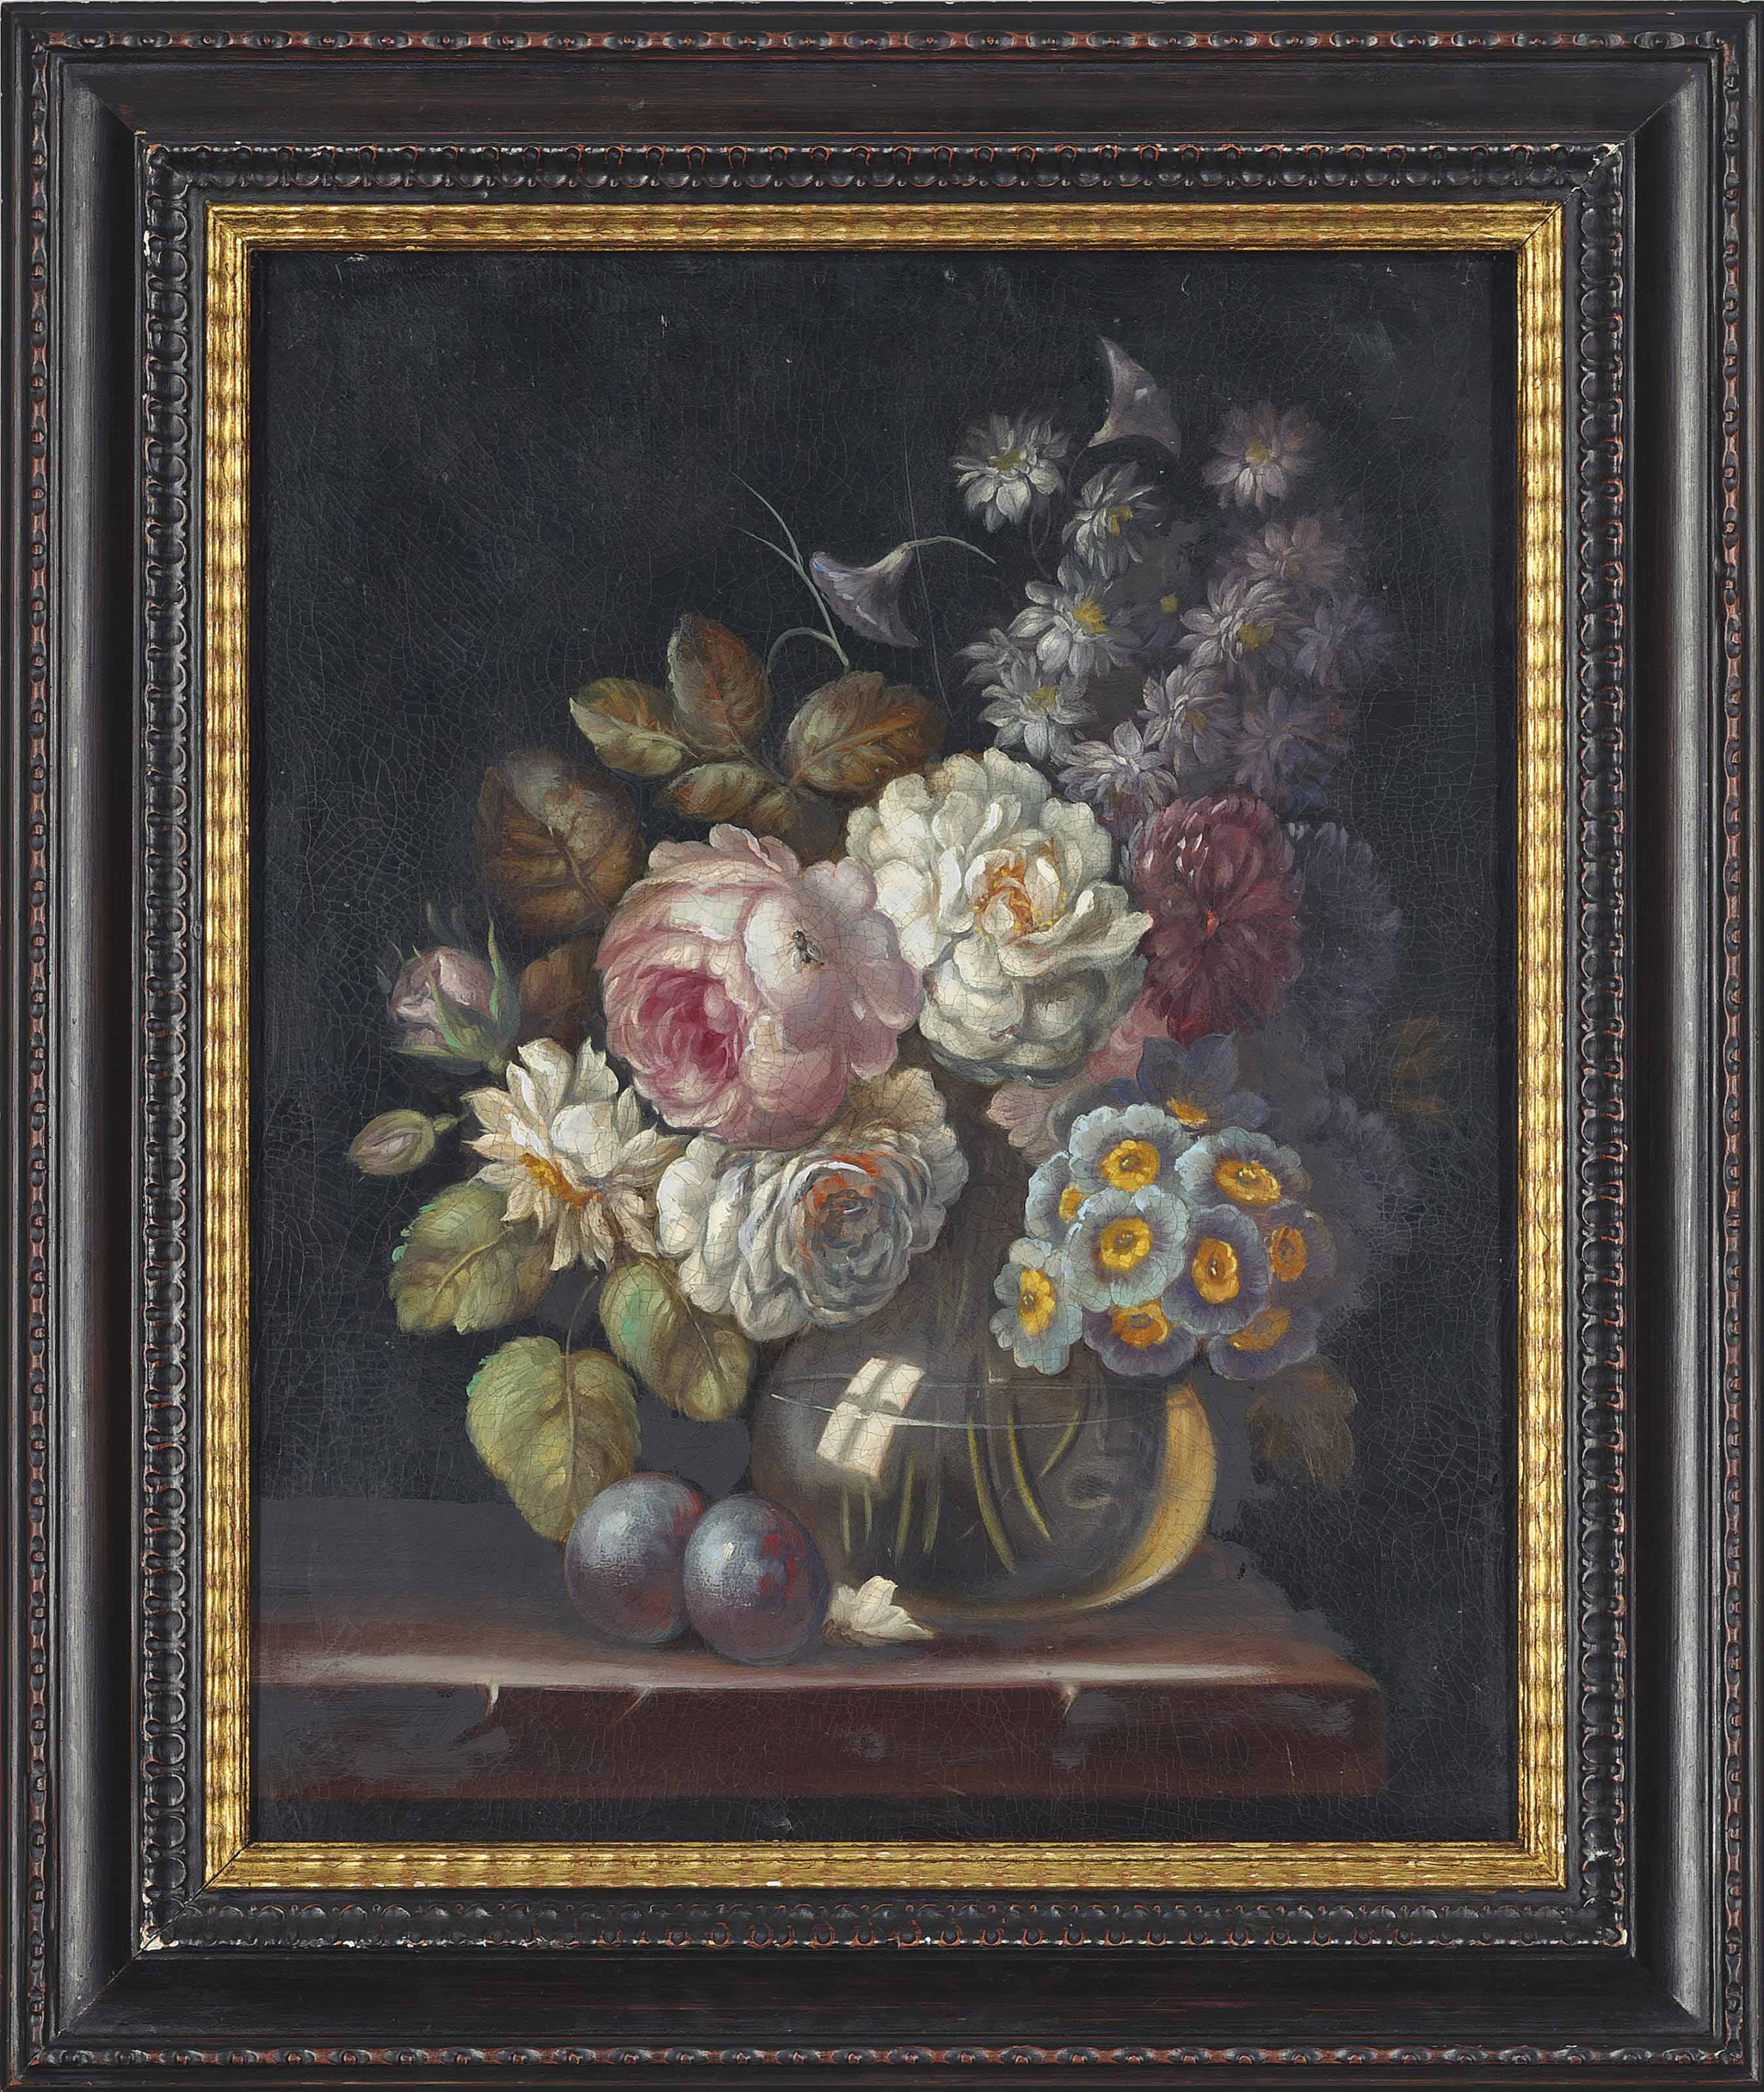 Roses, snowballs and other flowers in a glass vase on a stone ledge